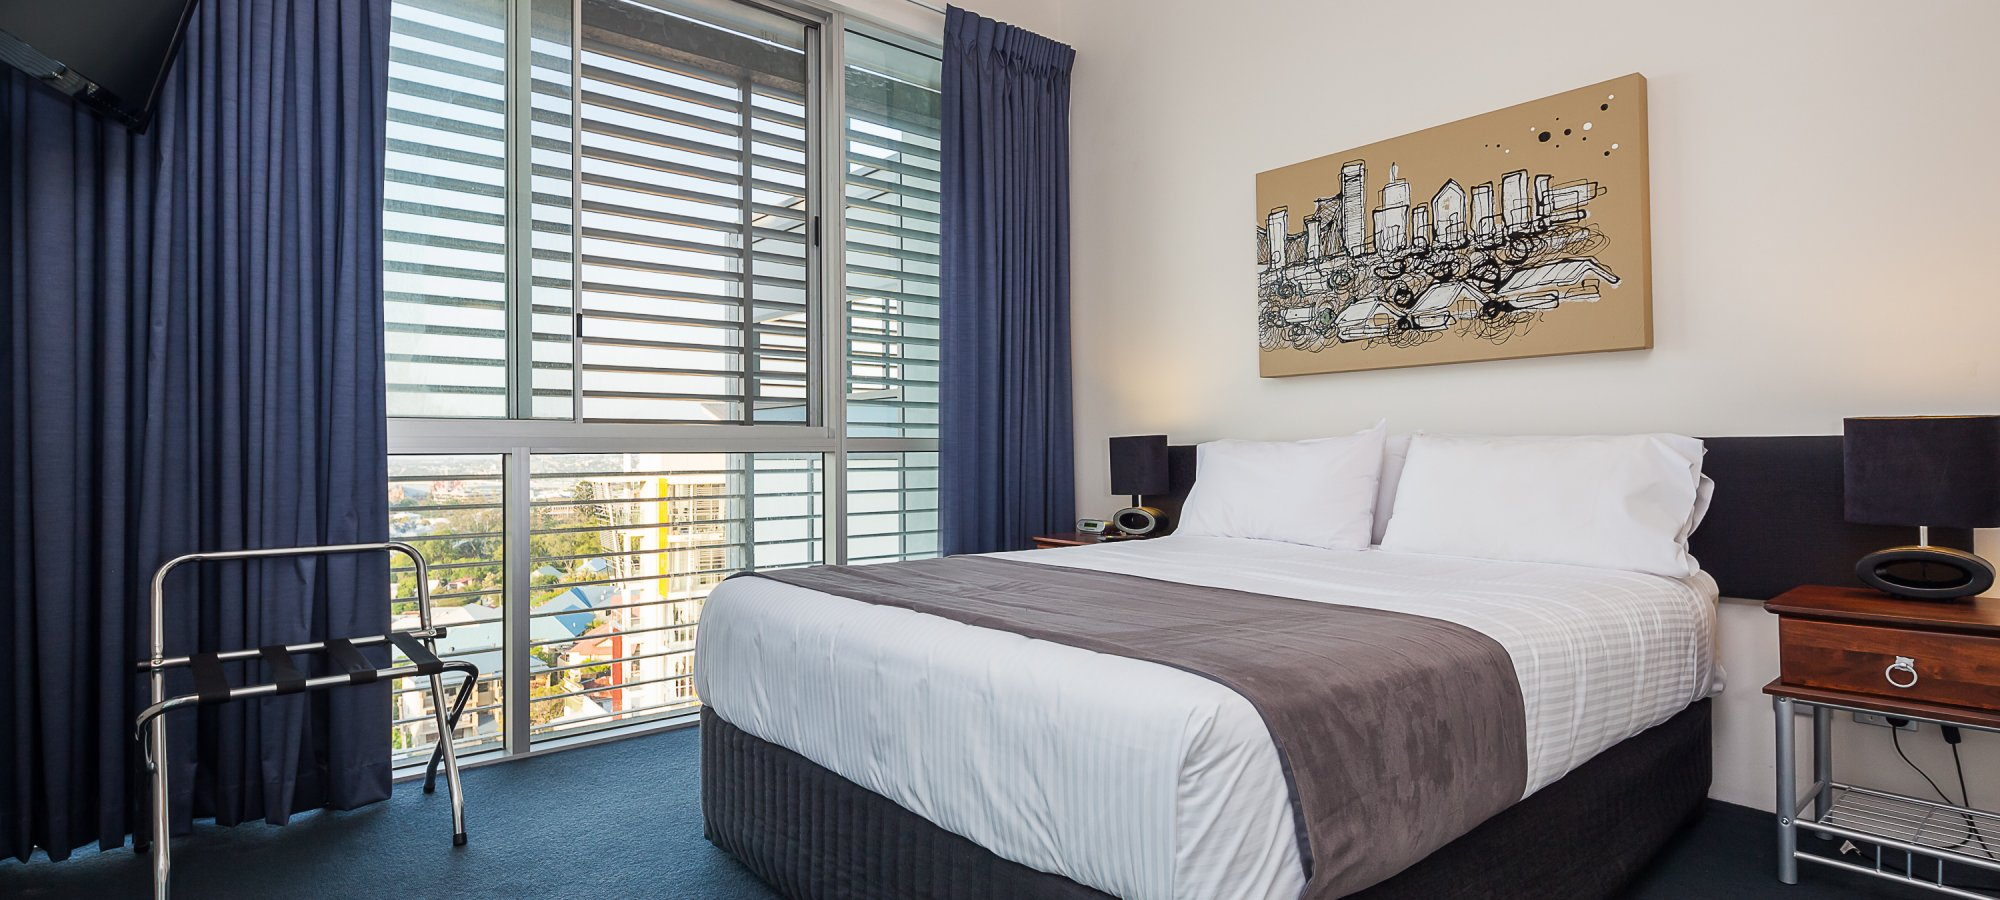 Apartments Accommodation Spring Hill 3 Bedroom Pent House Bedroom